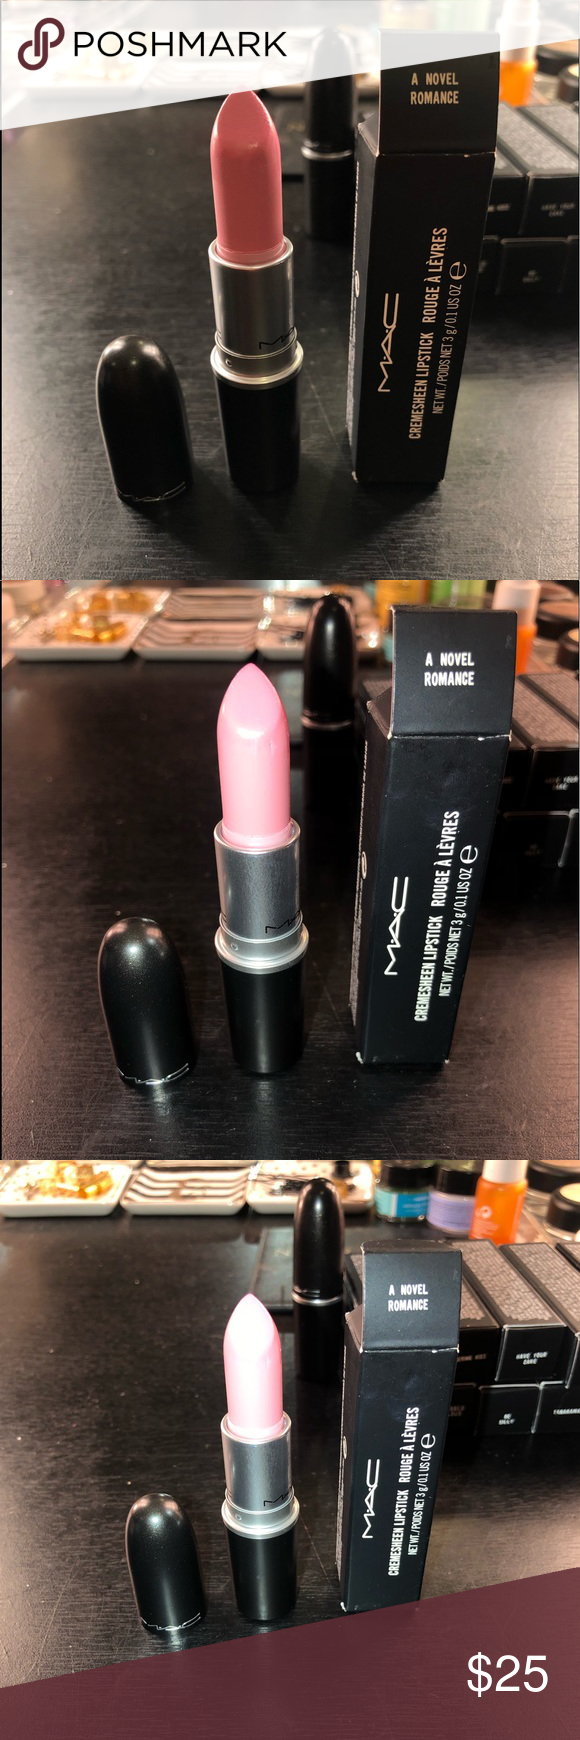 Mac Cosmetics Lipstick A Novel Romance LE Mac Cosmetics Lipstick  A Novel Romance      Mac Cosmetics Lipstick  A Novel Romance  Limited Edition.   Lipstick has been swatched   Its not sold in stores anymore Authentic Has vanilla smell MAC Cosmetics Makeup Lipstick #romanceornot?